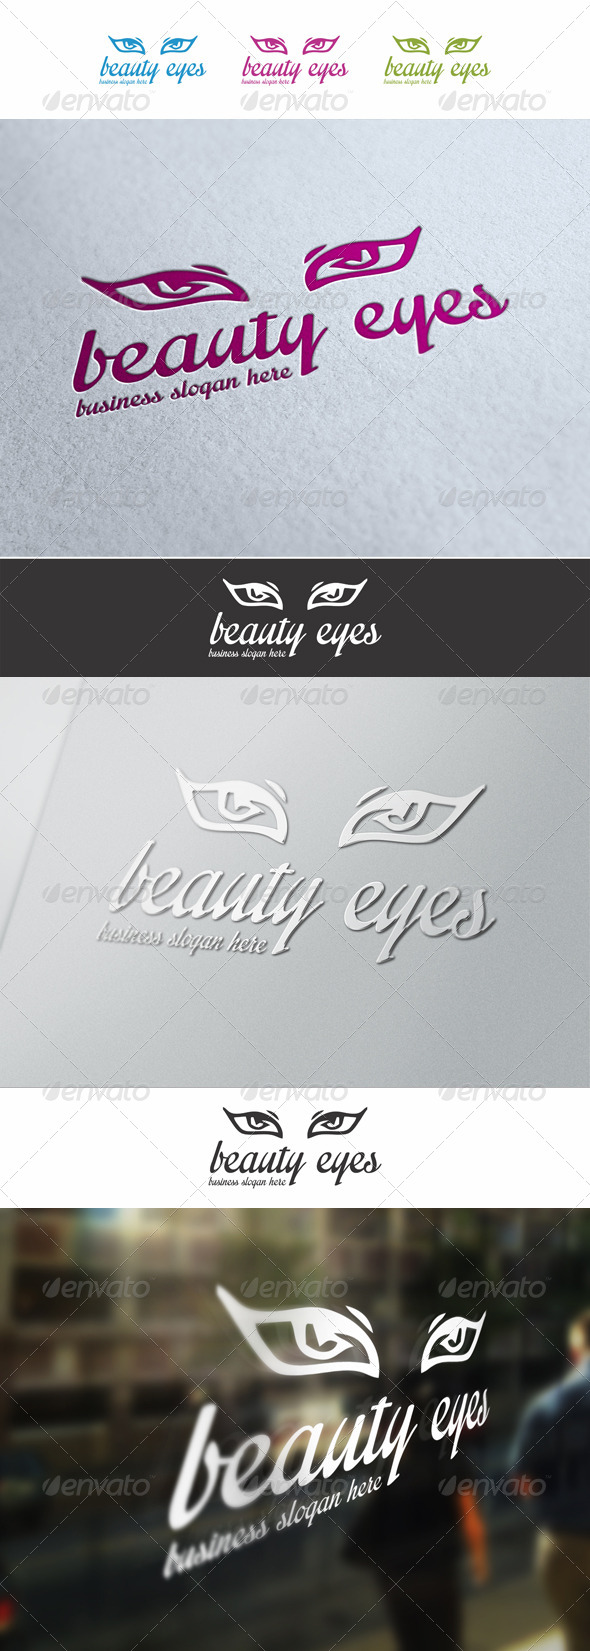 GraphicRiver Beautiful Eyes Logo 6609896